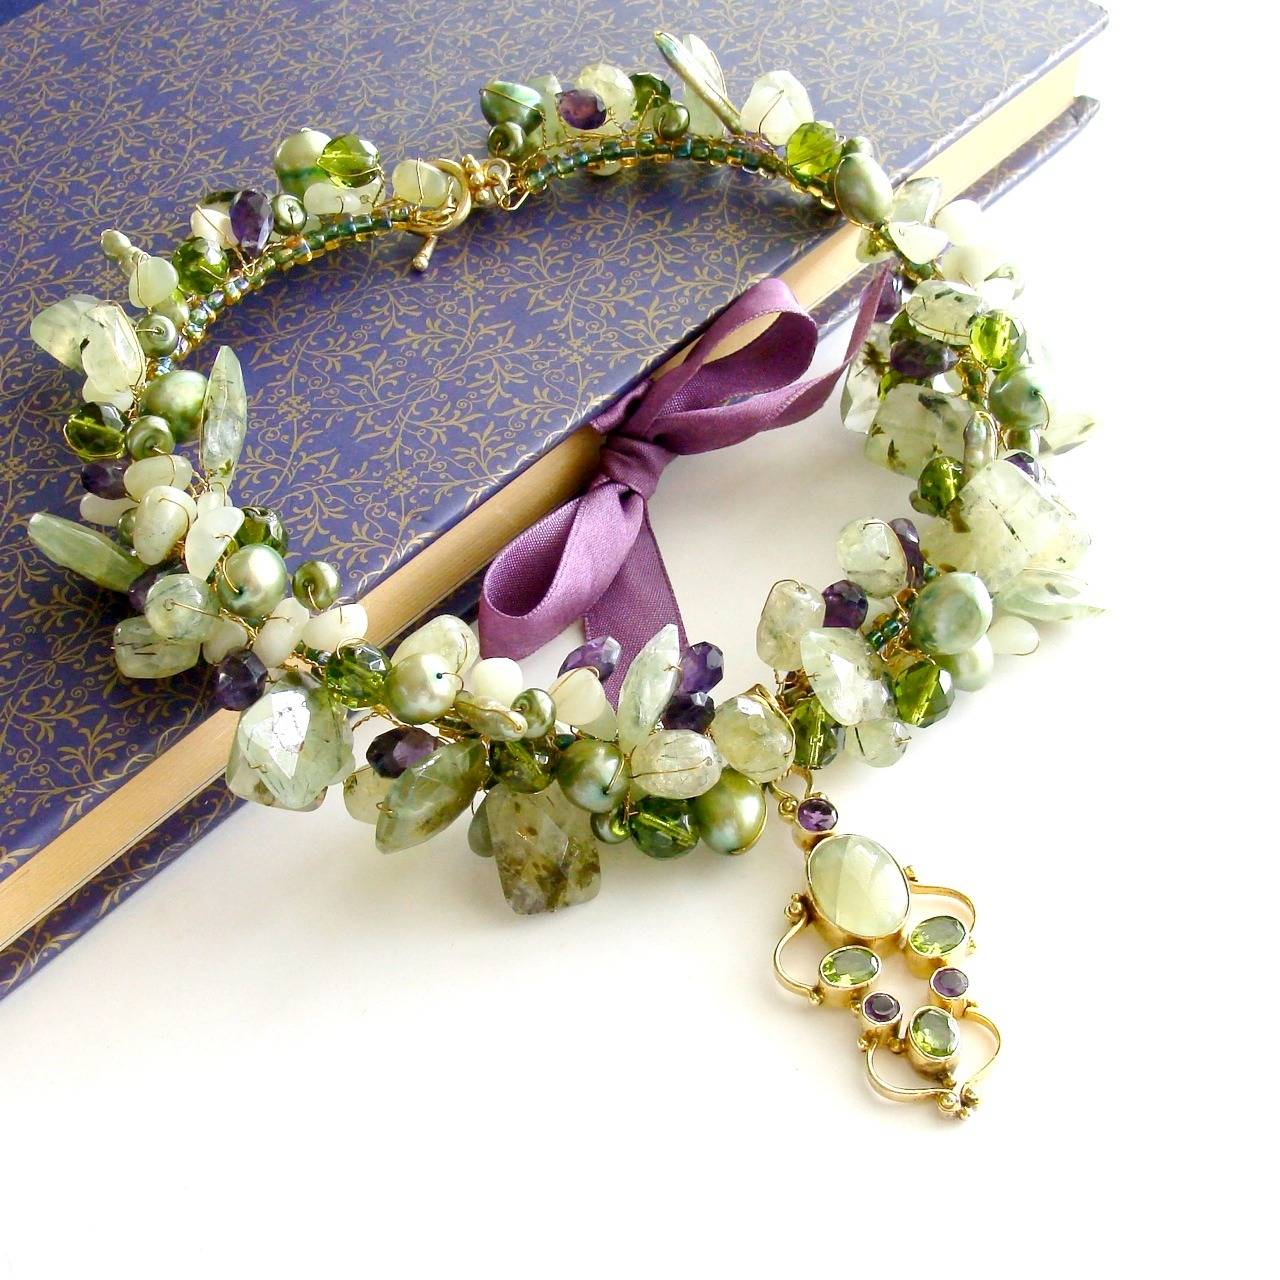 Peridot Grossular Garnet Choker Necklace - Amethyst Pearls New Jade 3